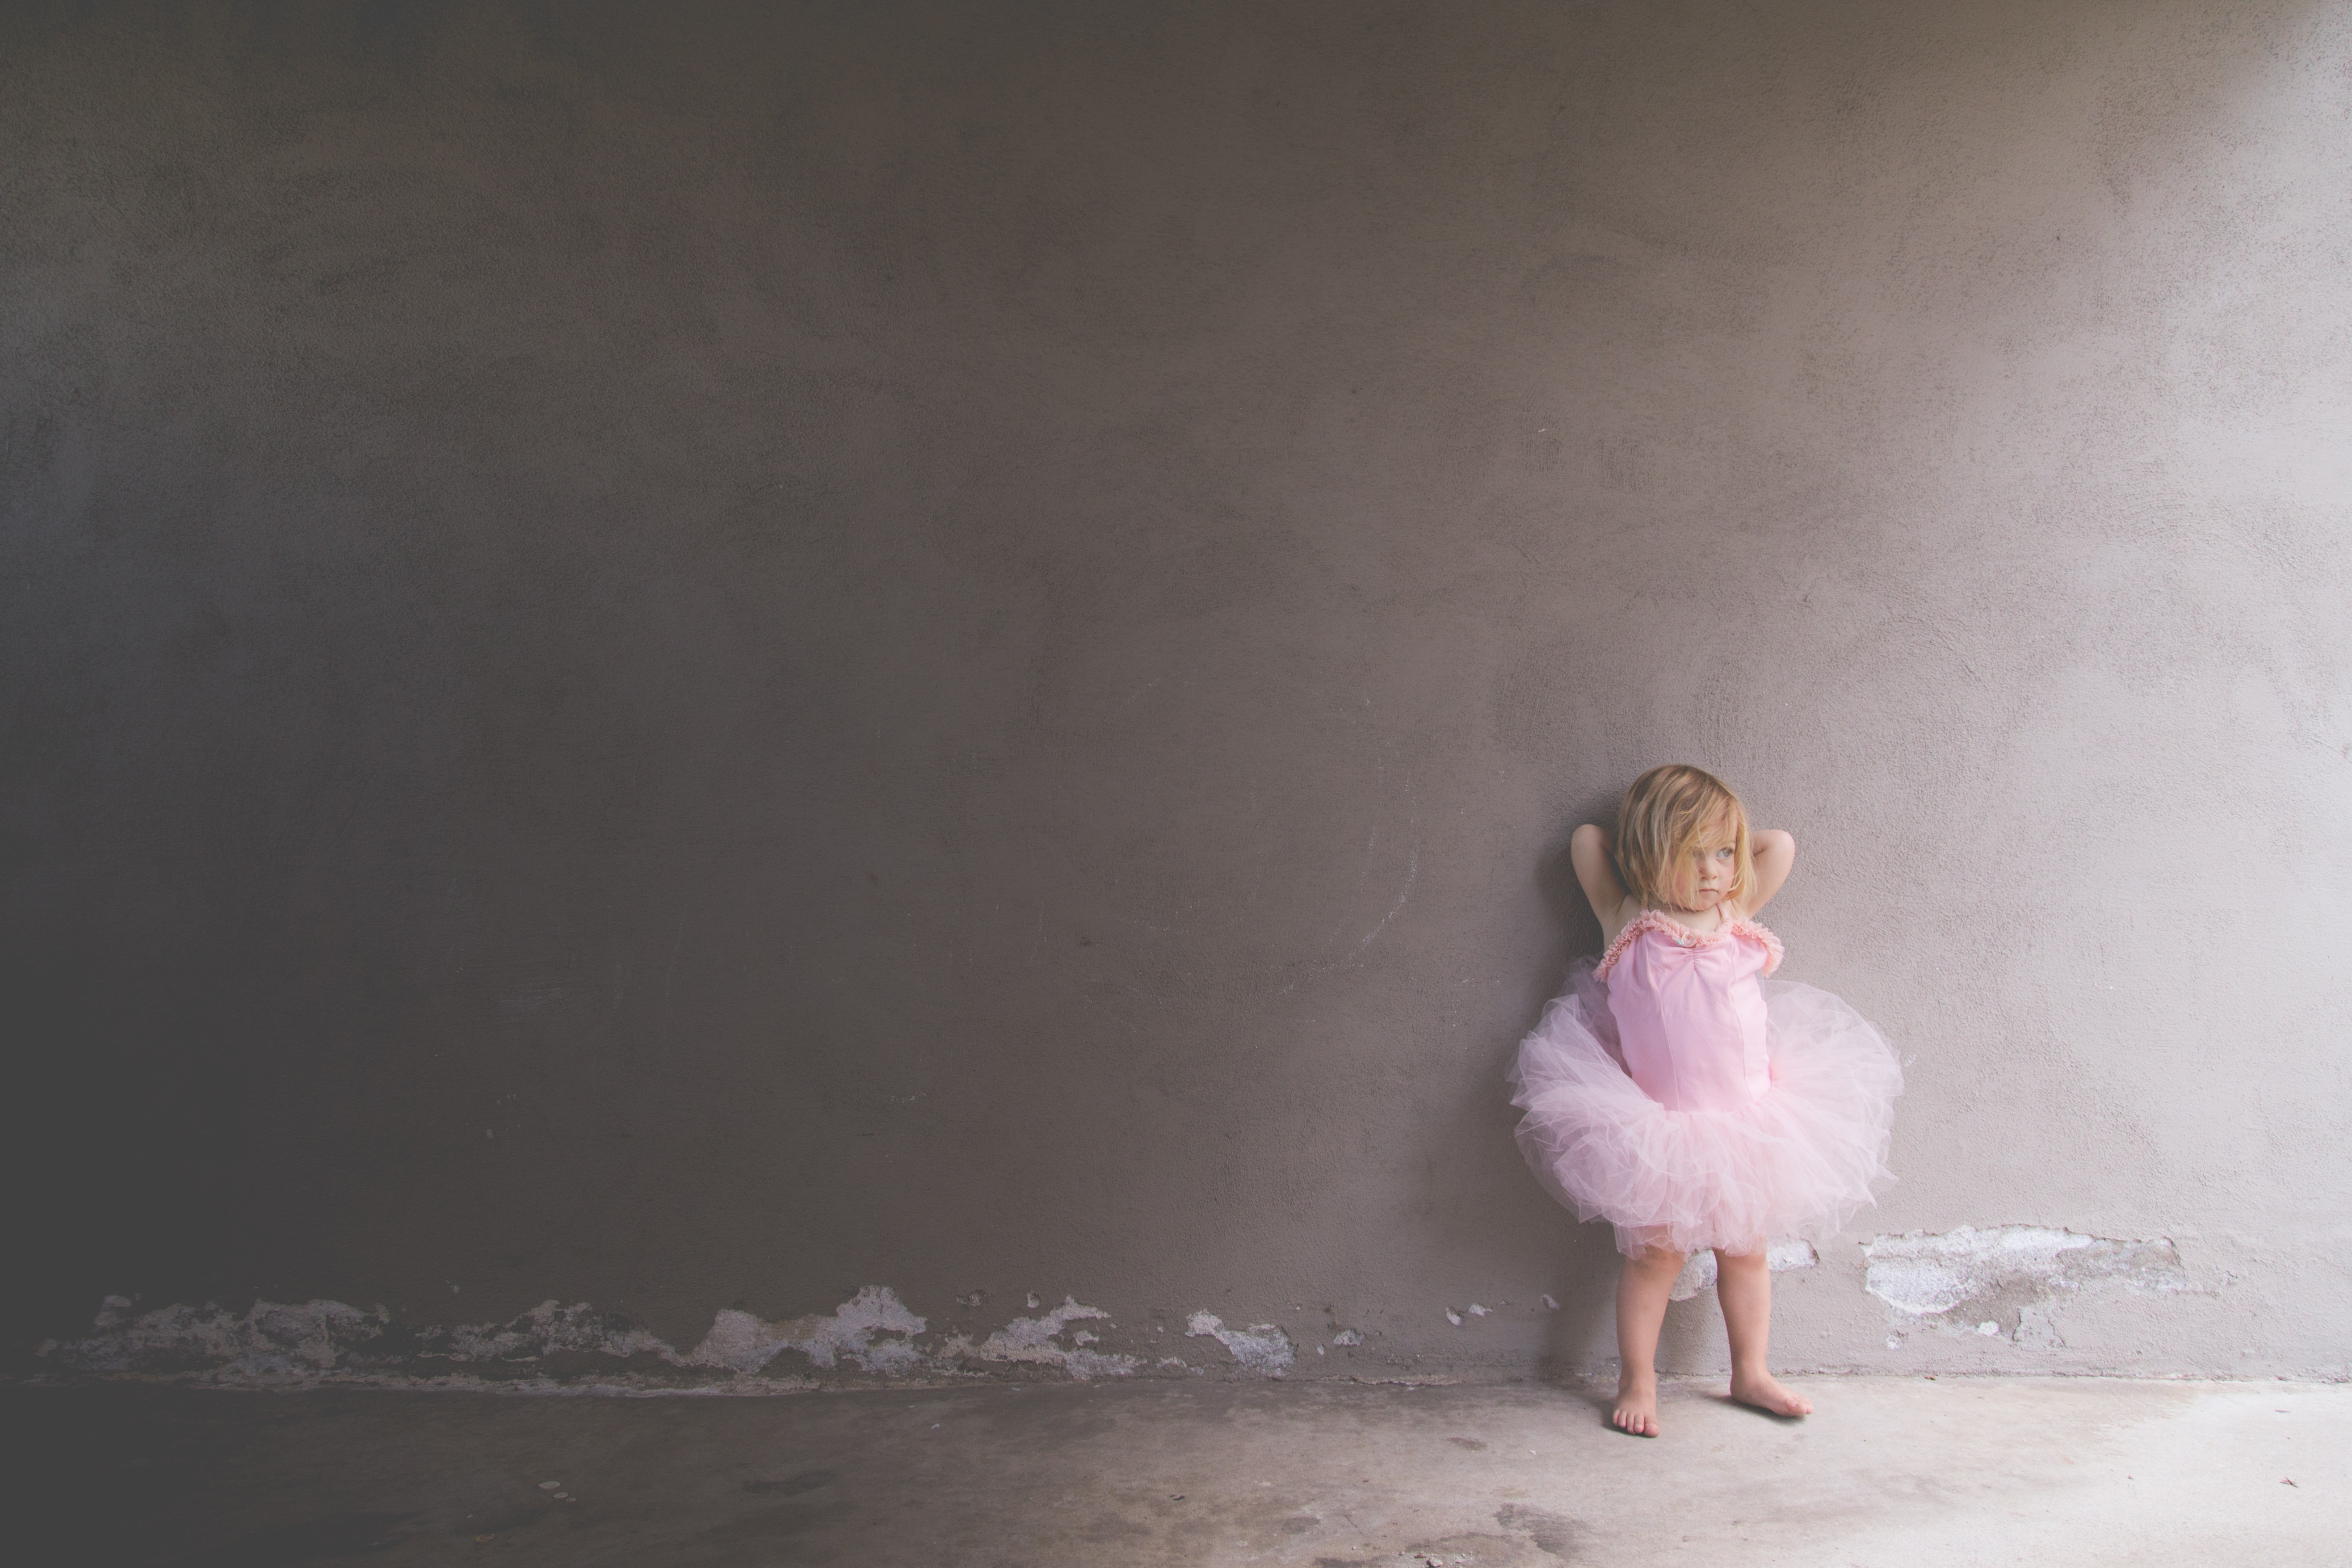 girl in pink tutu dress leaning on the wall